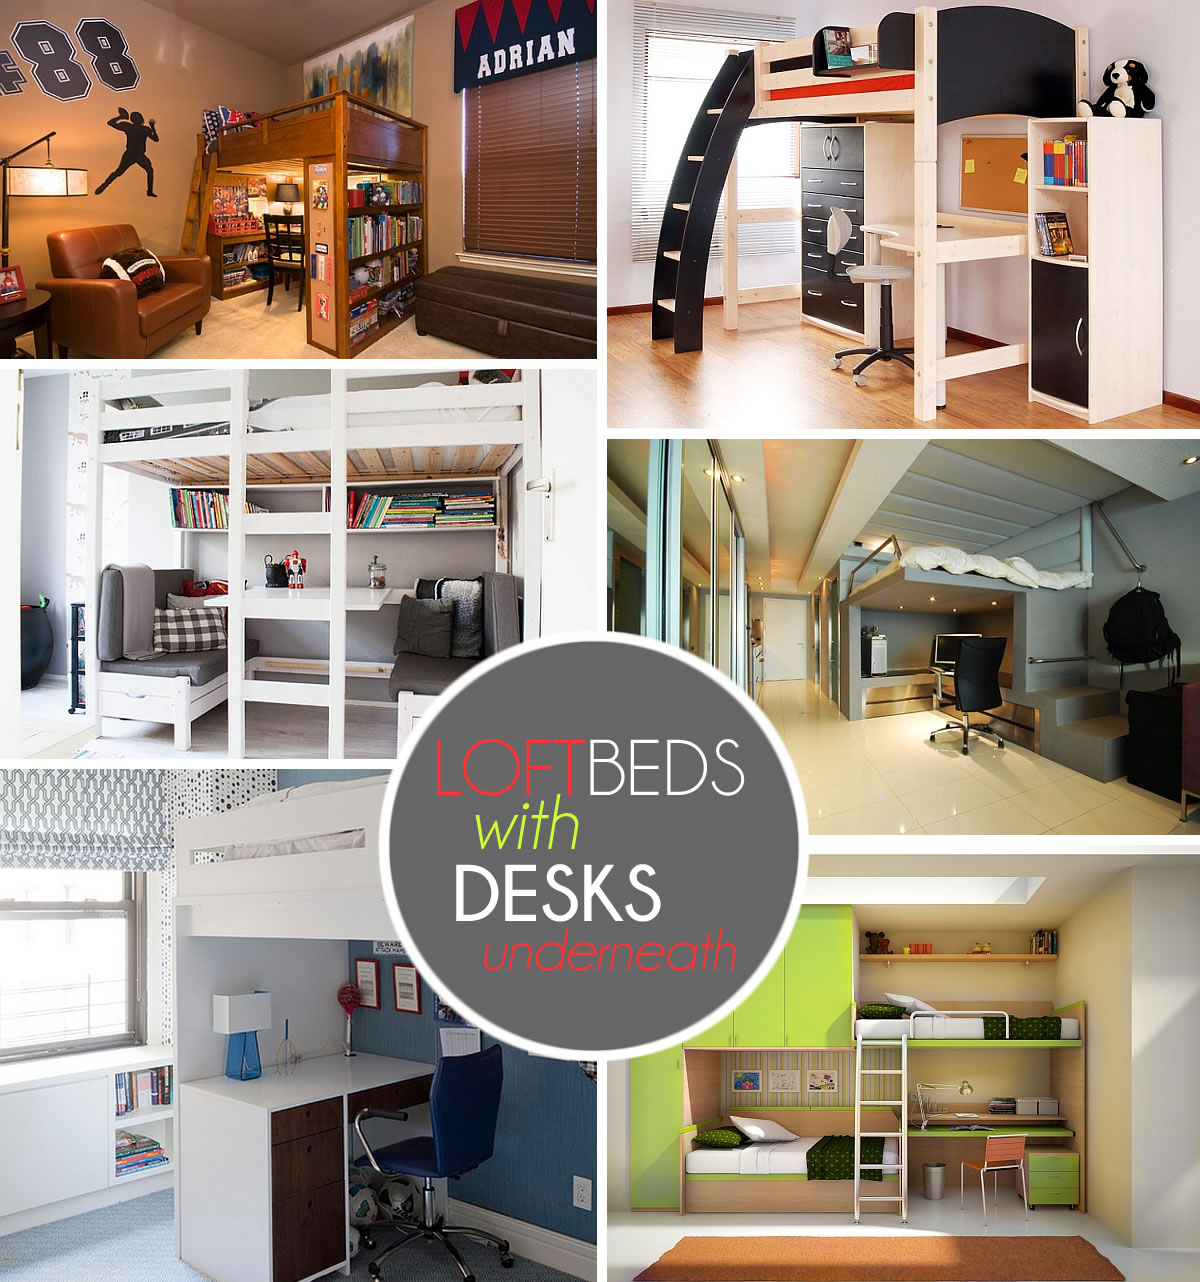 Loft Beds With Desks Underneath: 30+ Design Ideas With ...